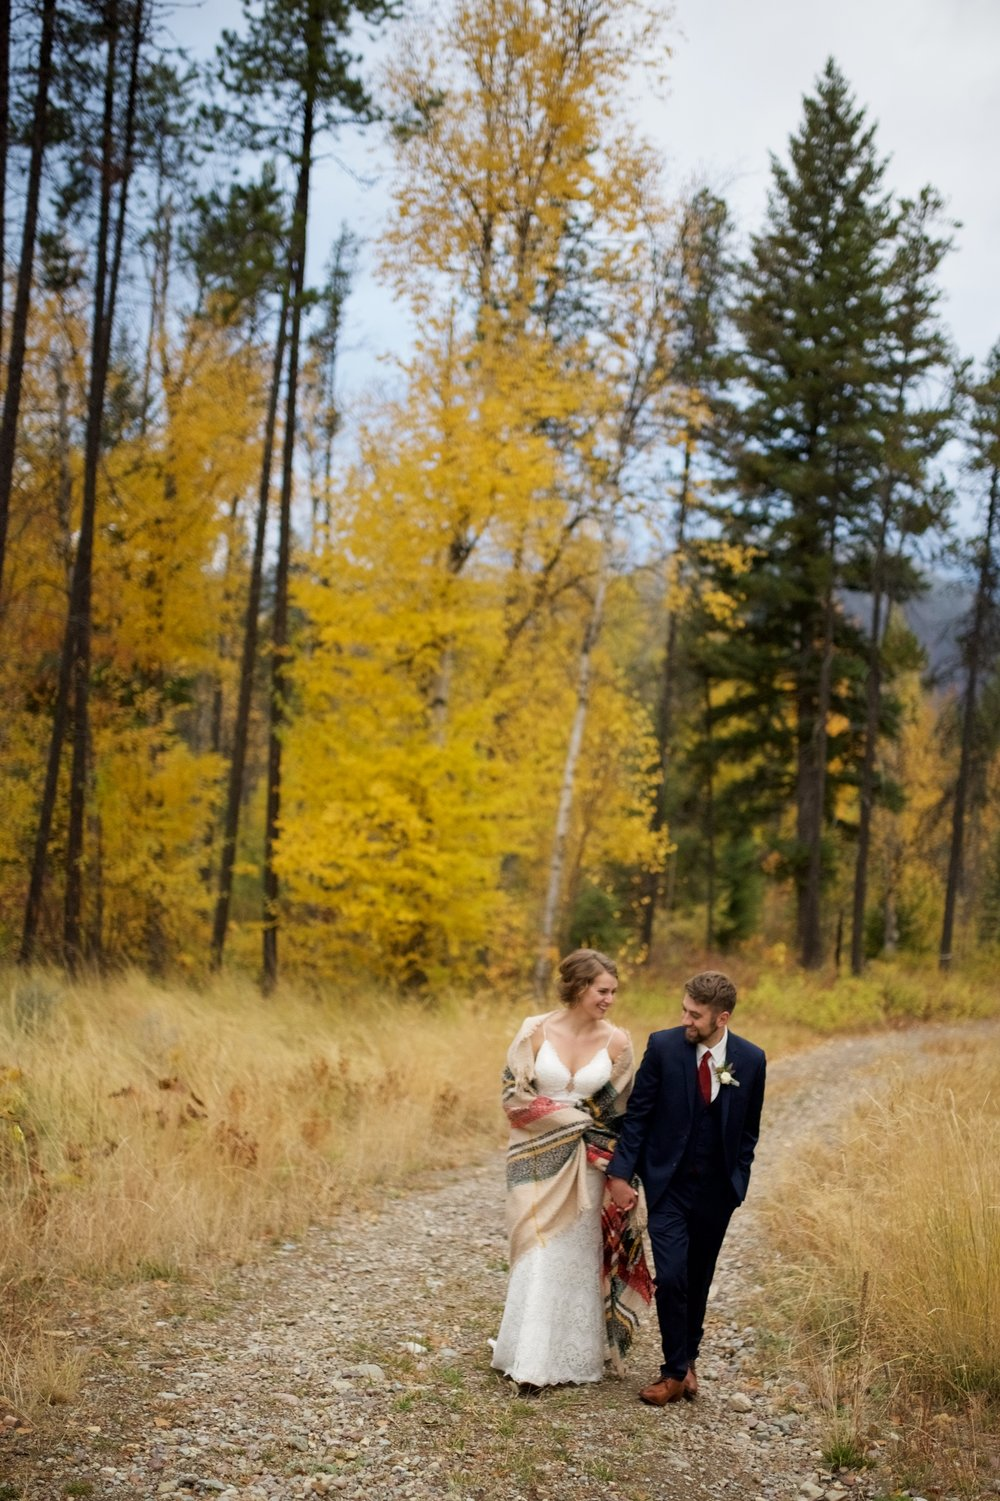 lindseyjane_wedding125.jpg